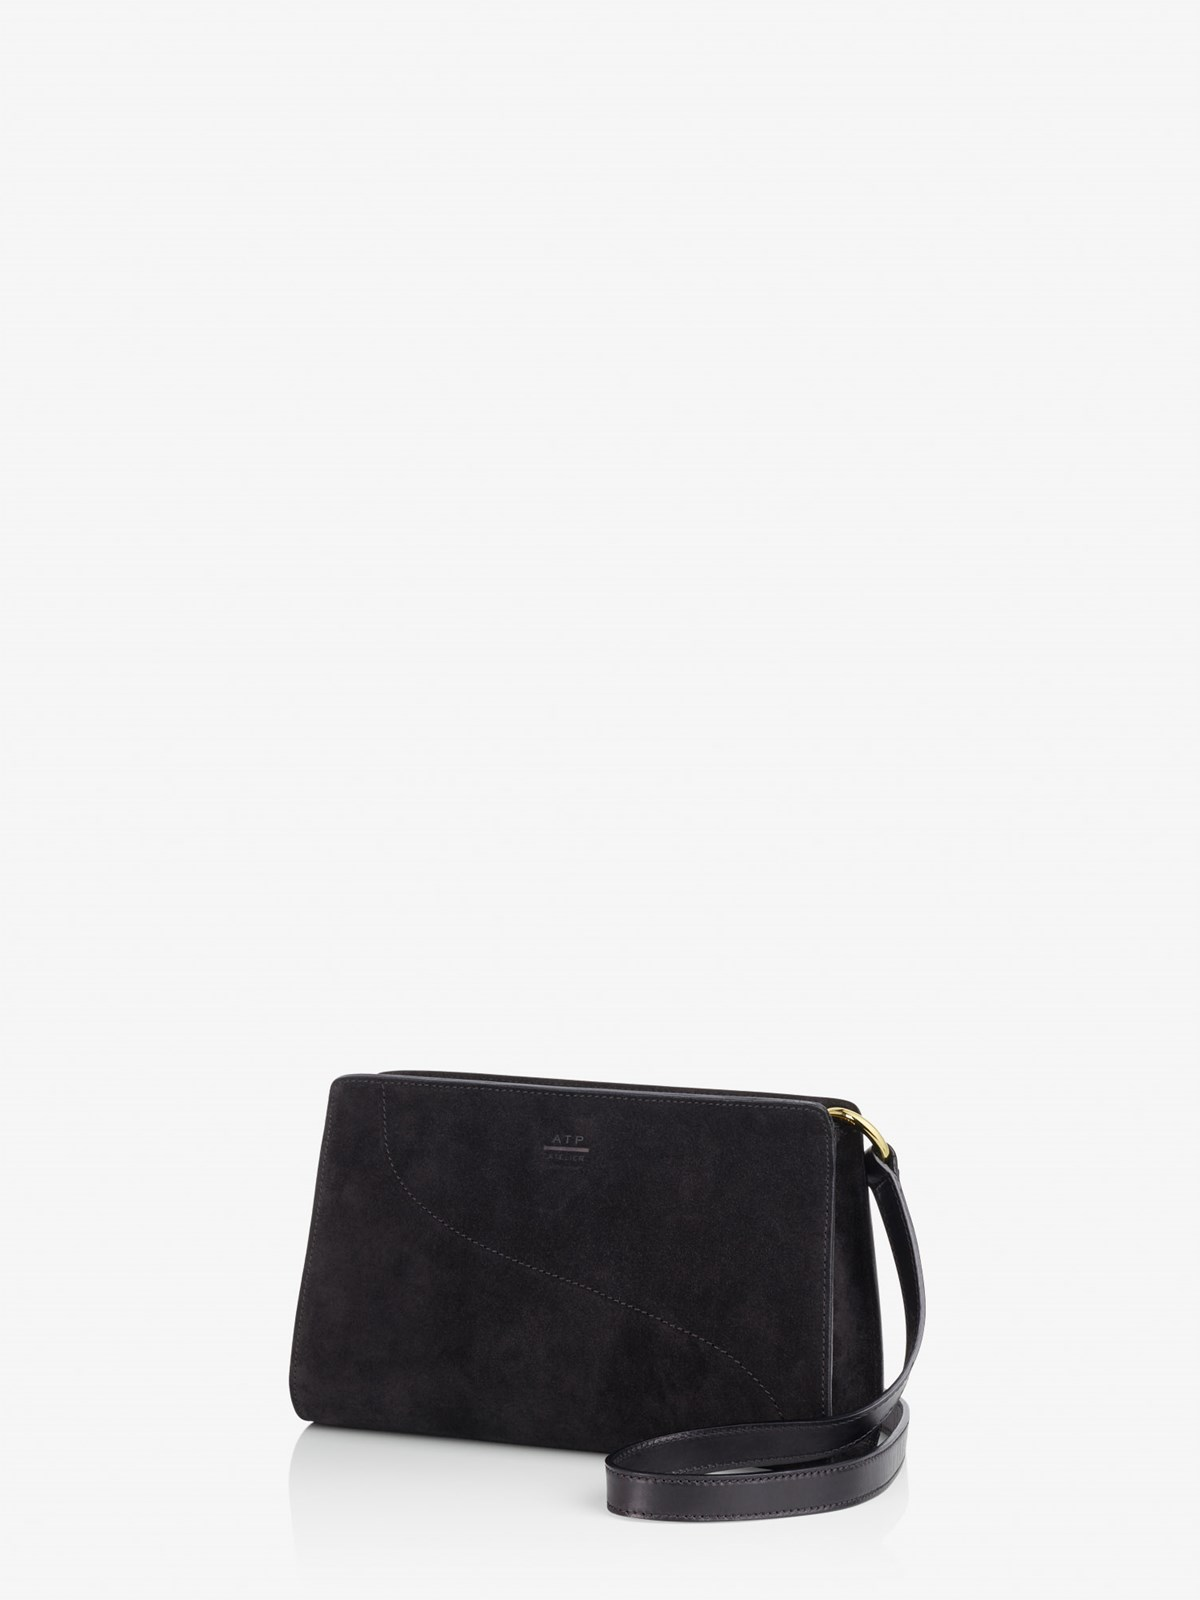 Tallamone Black Crossbody bag